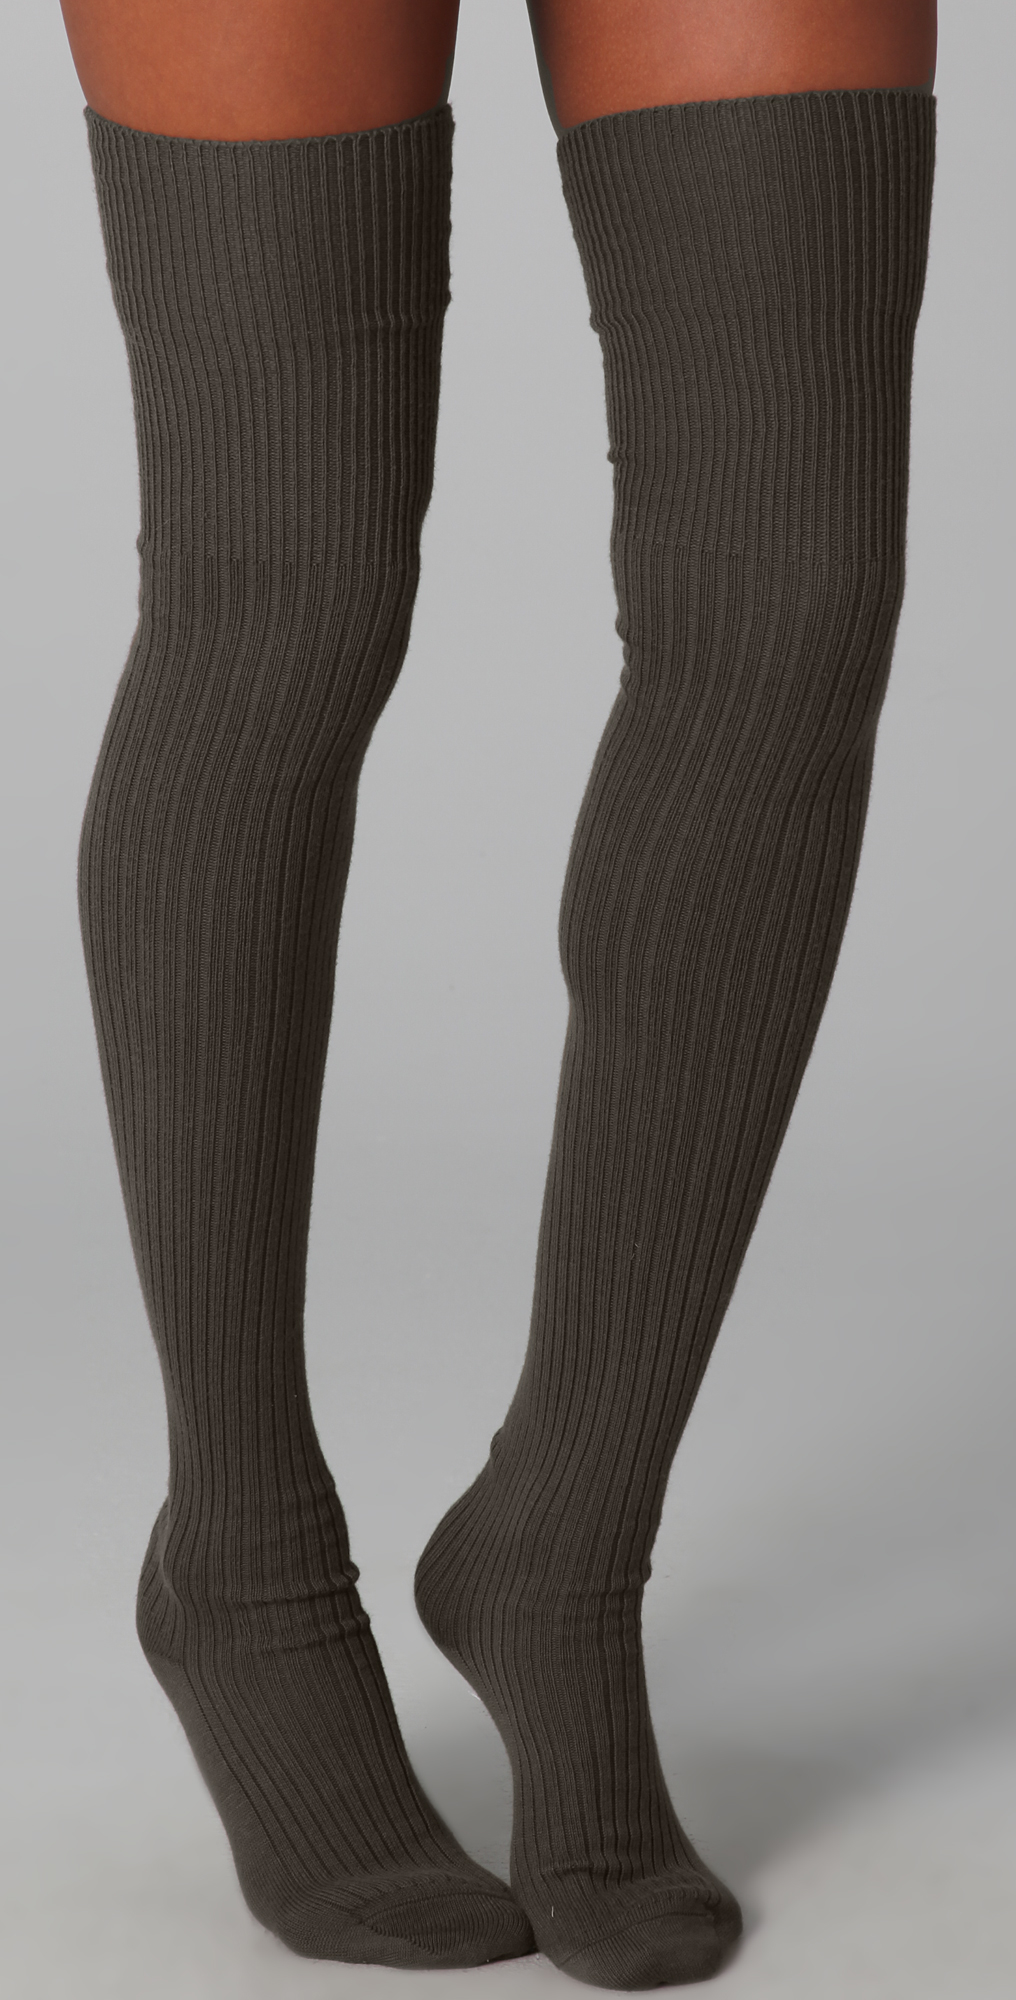 5c7426f593a Falke Striggings Ribbed Over The Knee Socks in Green - Lyst